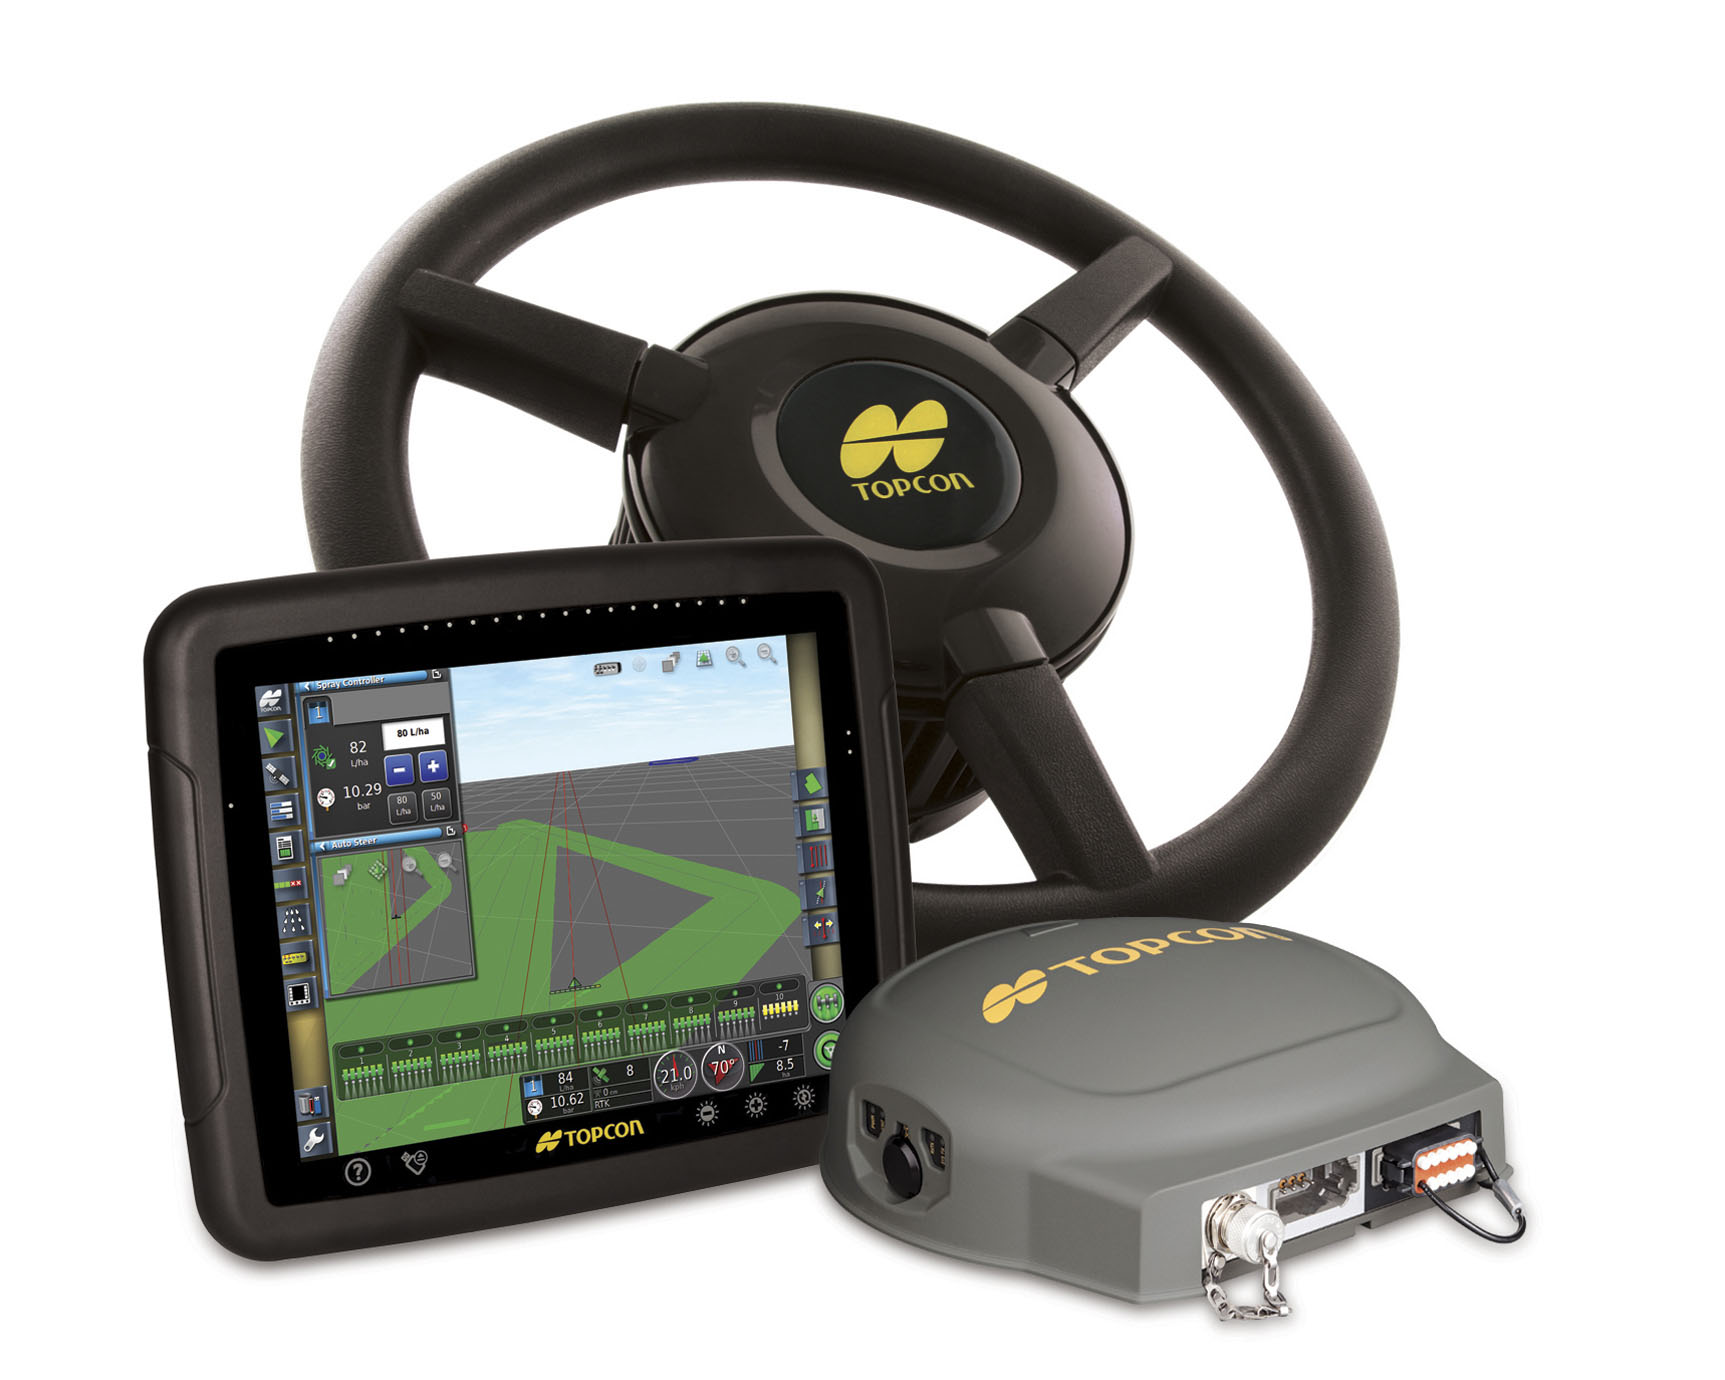 gps auto steering system spotlight farmers hot line. Black Bedroom Furniture Sets. Home Design Ideas